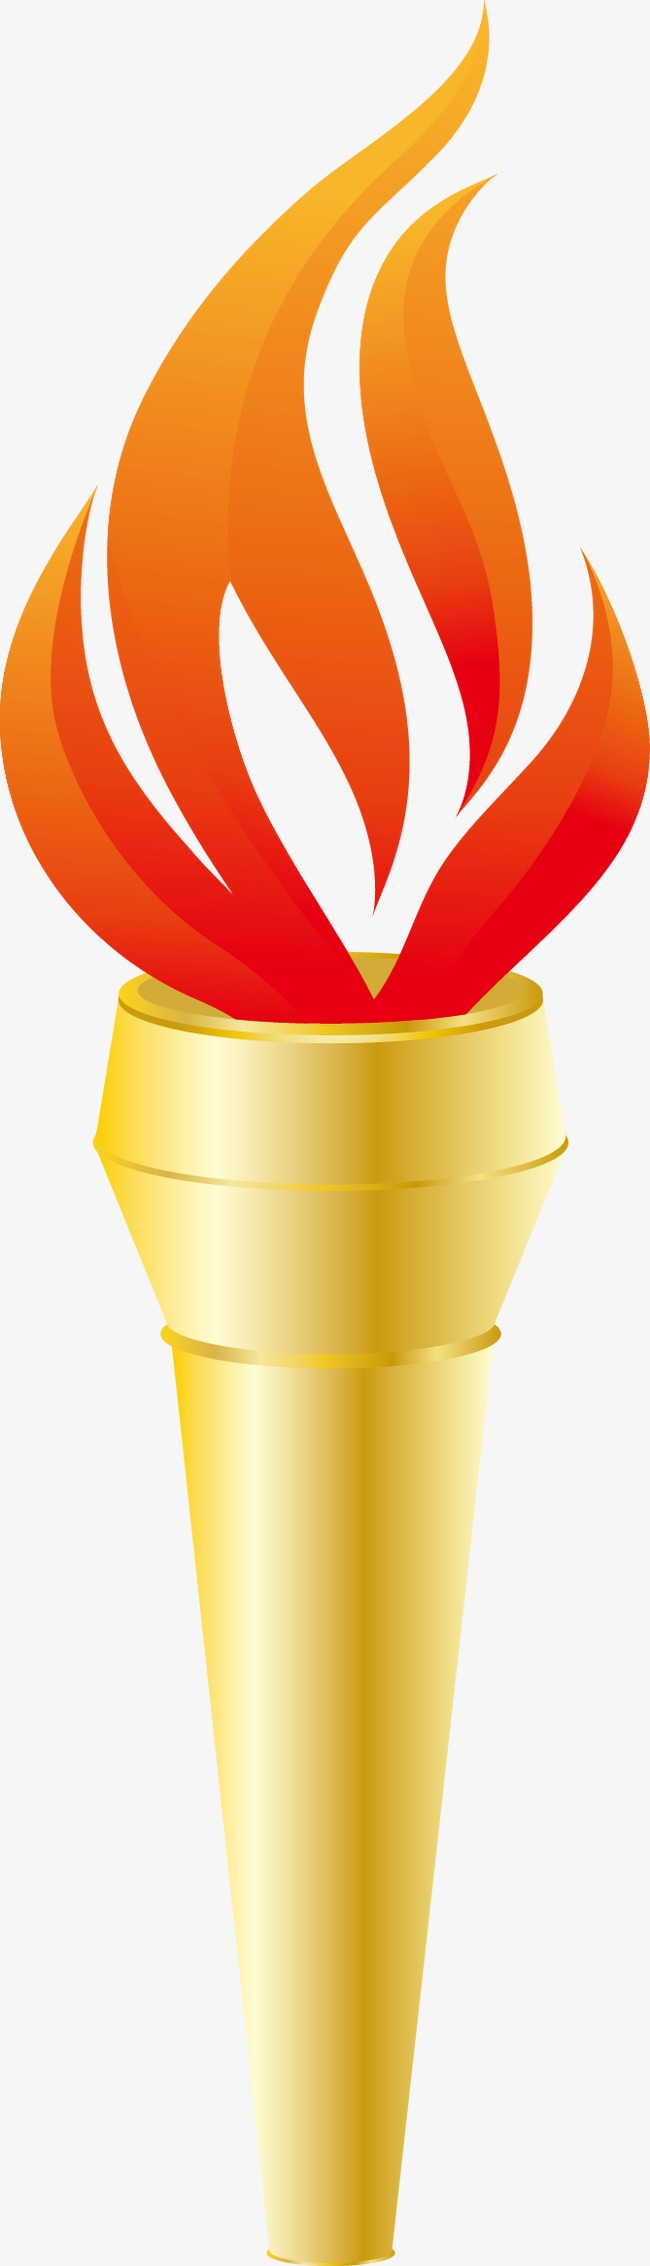 Torch clipart. Olympic at getdrawings com